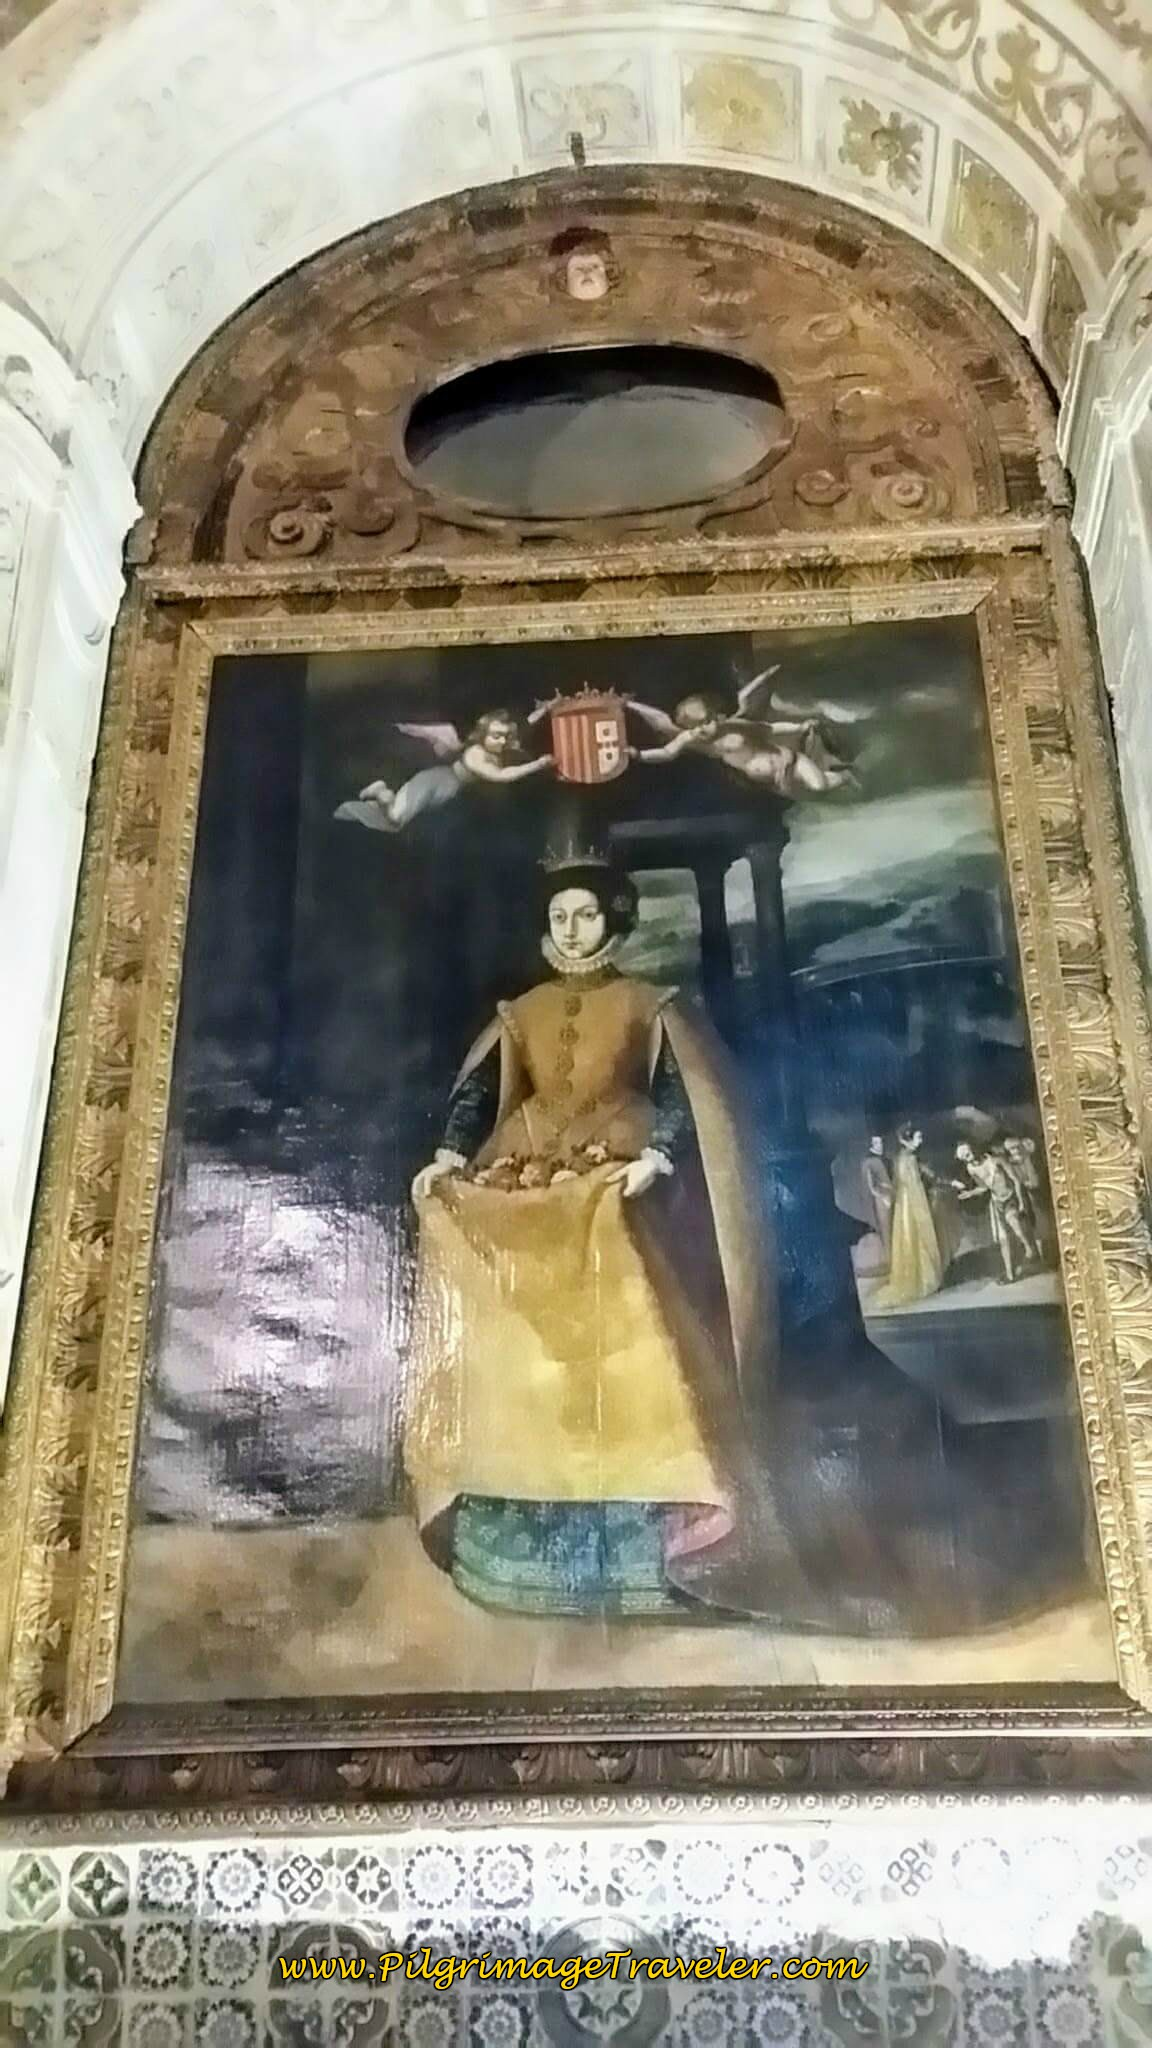 Portrait of the Queen, Saint Isabel in the Sé Velha, Coimbra